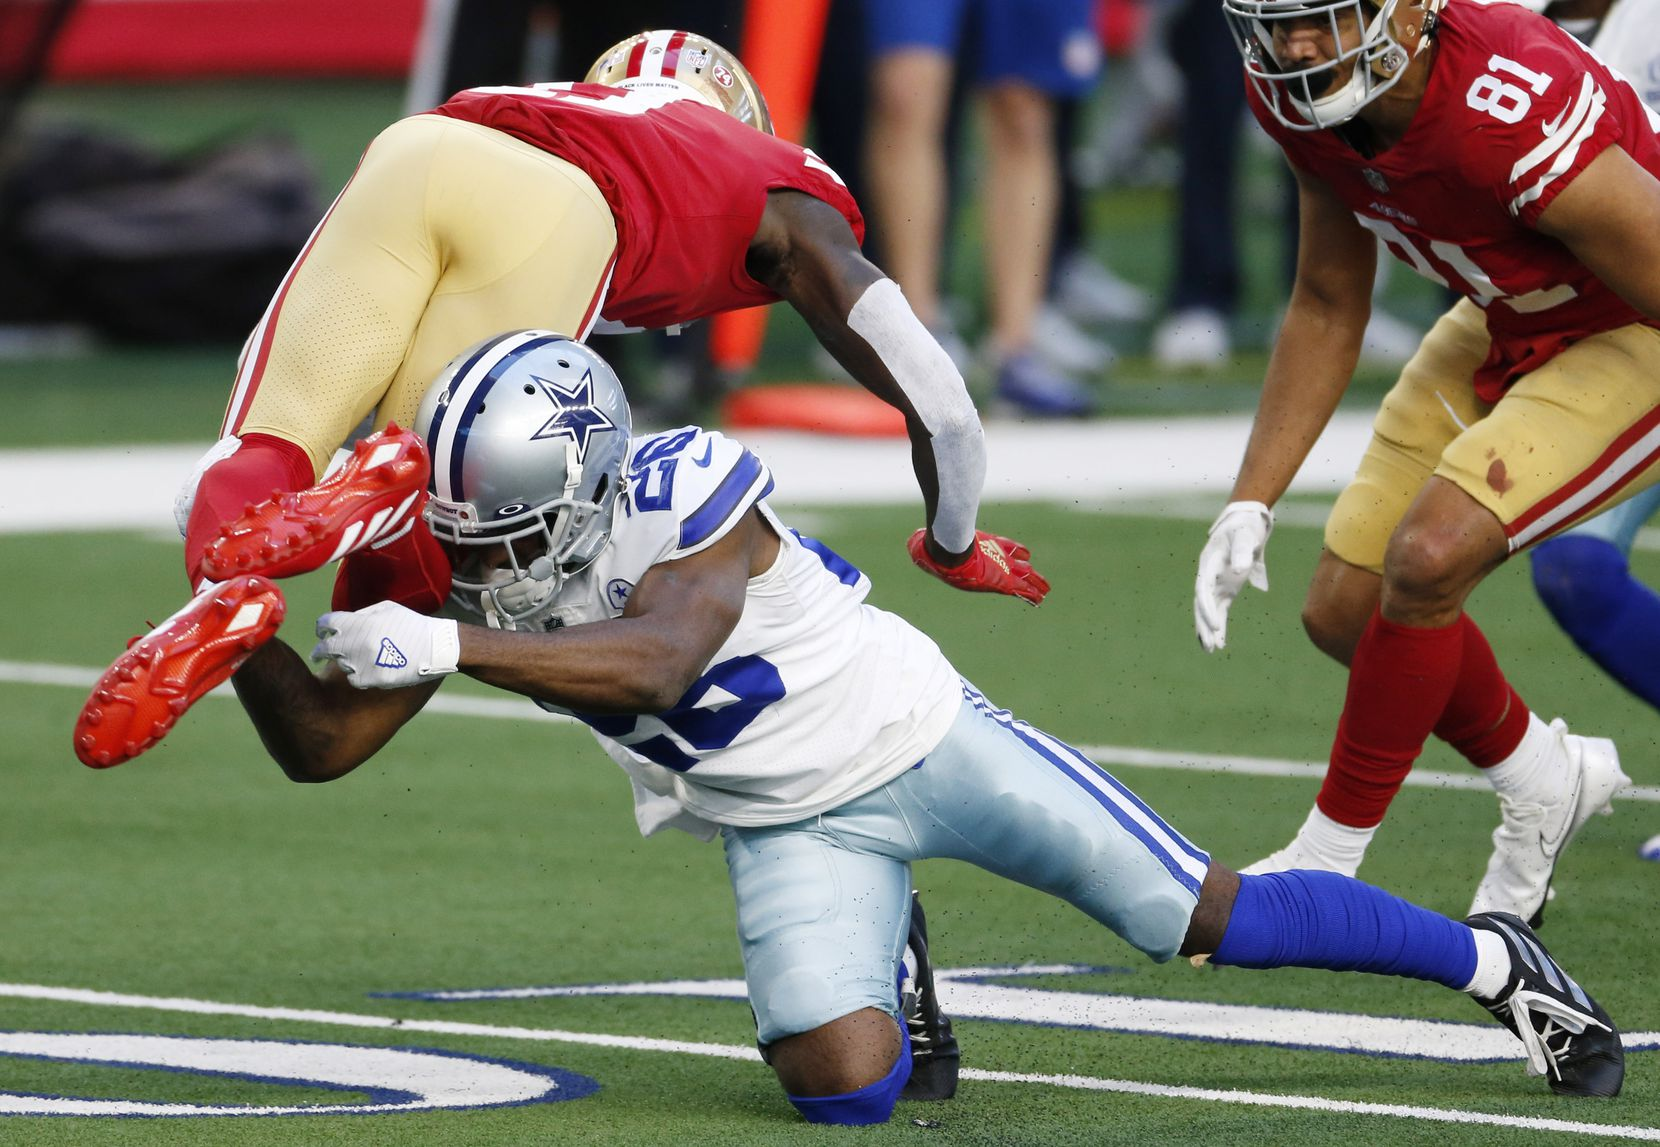 FILE - Cowboys cornerback Jourdan Lewis (26) tackles 49ers wide receiver Brandon Aiyuk (11) for a loss during the second quarter of a game on Sunday, Dec. 20, 2020, at AT&T Stadium in Arlington.